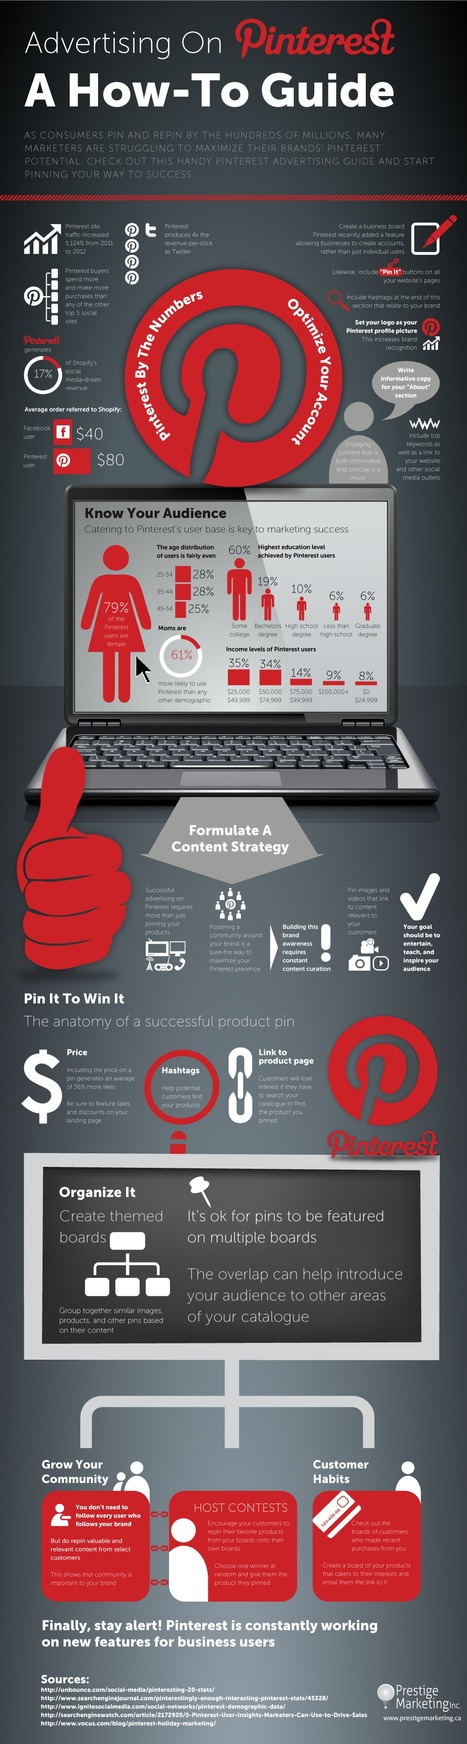 A Marketer's Guide To Pinterest - Infographic | Social Media Marketing Strategy for Business | Scoop.it